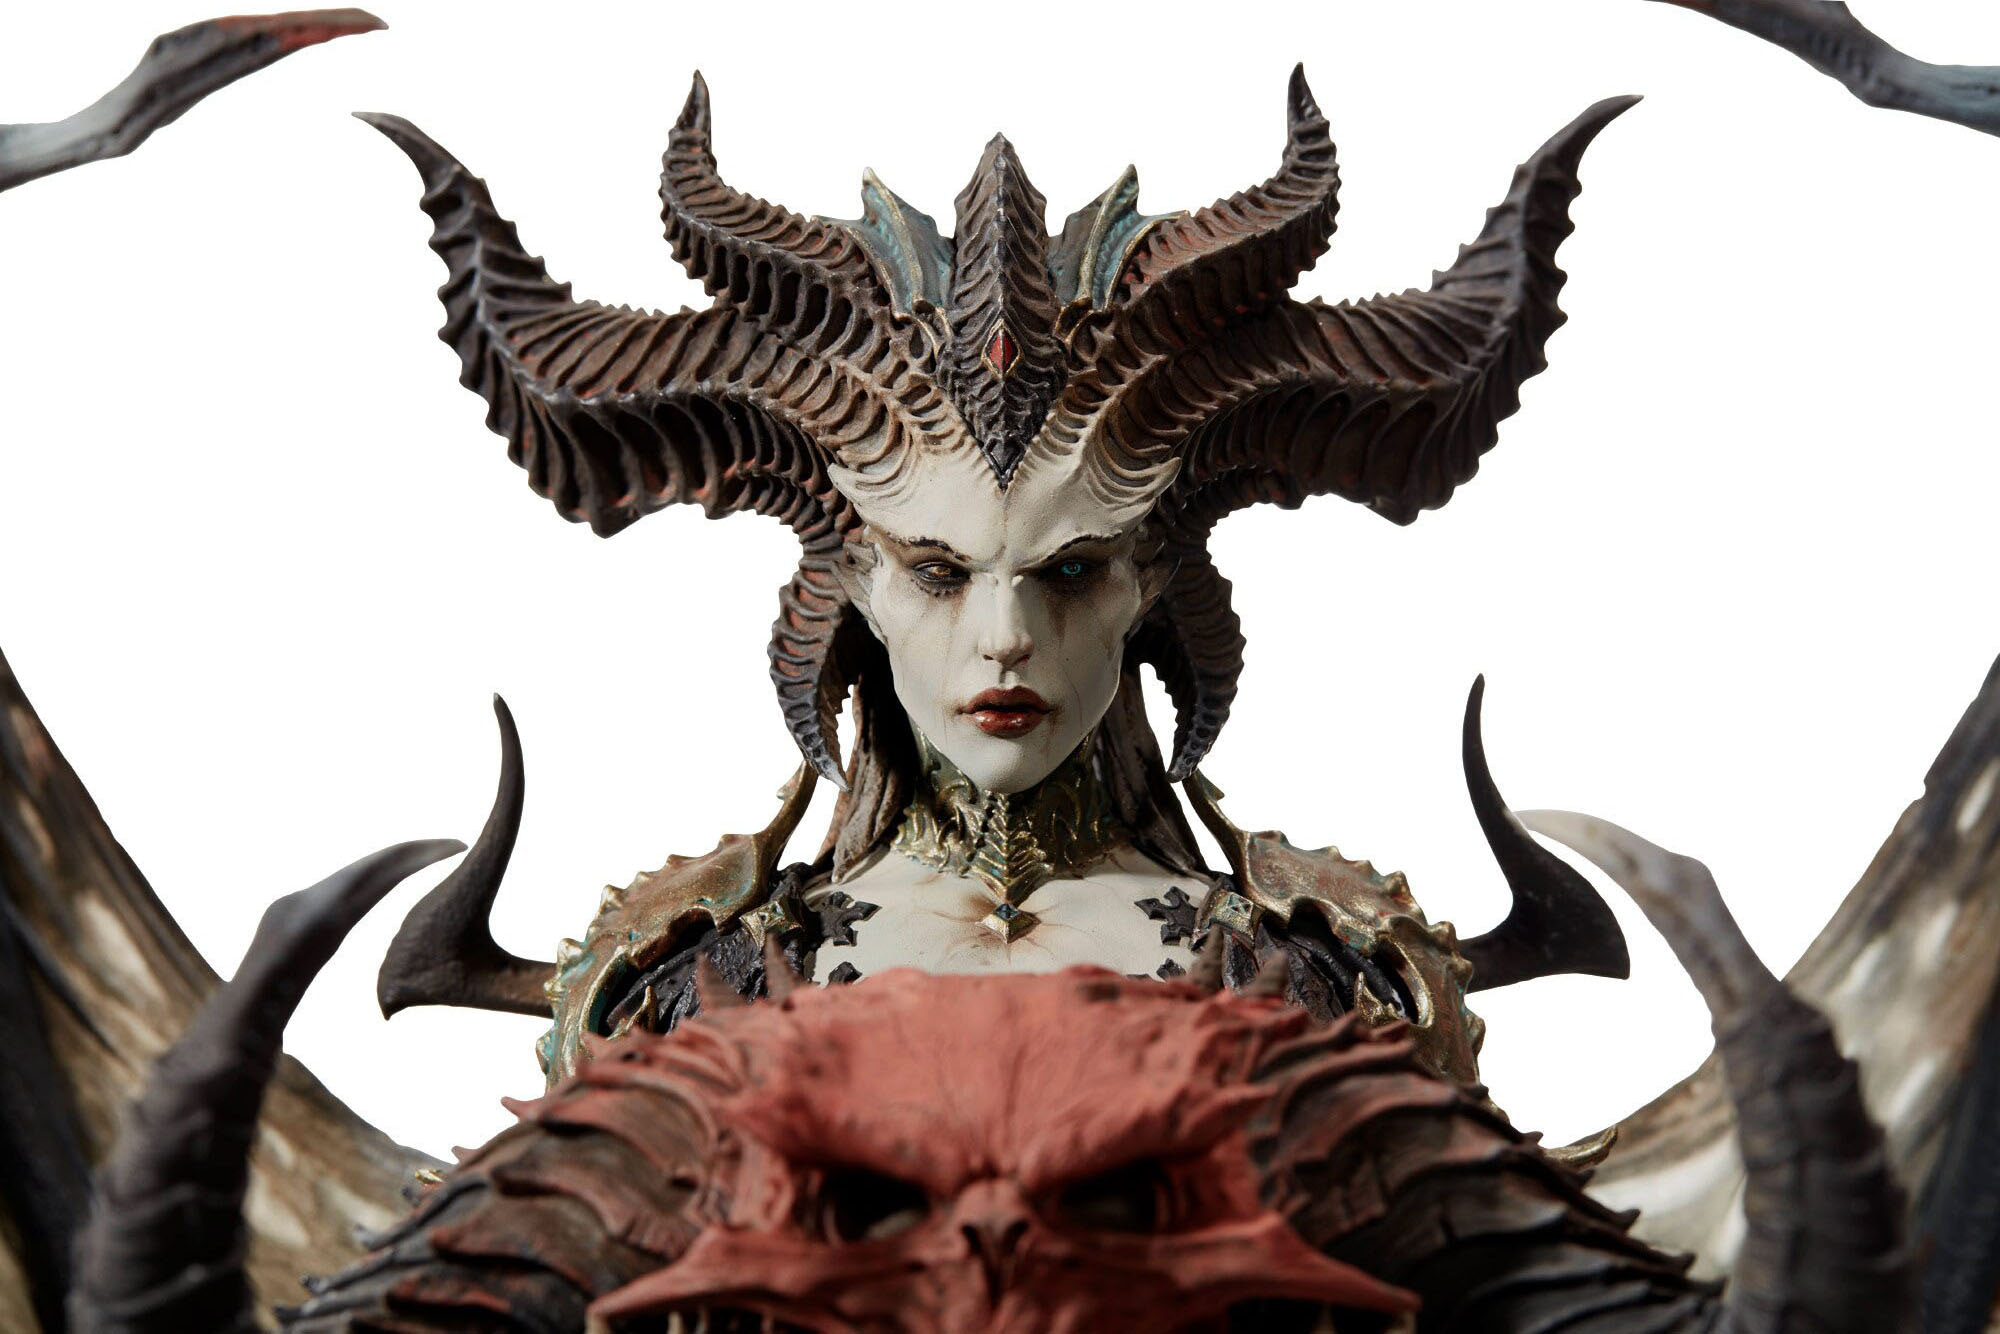 """""""Diablo IV"""" Lilith Has Arrived in New Premium Statue from Blizzard"""